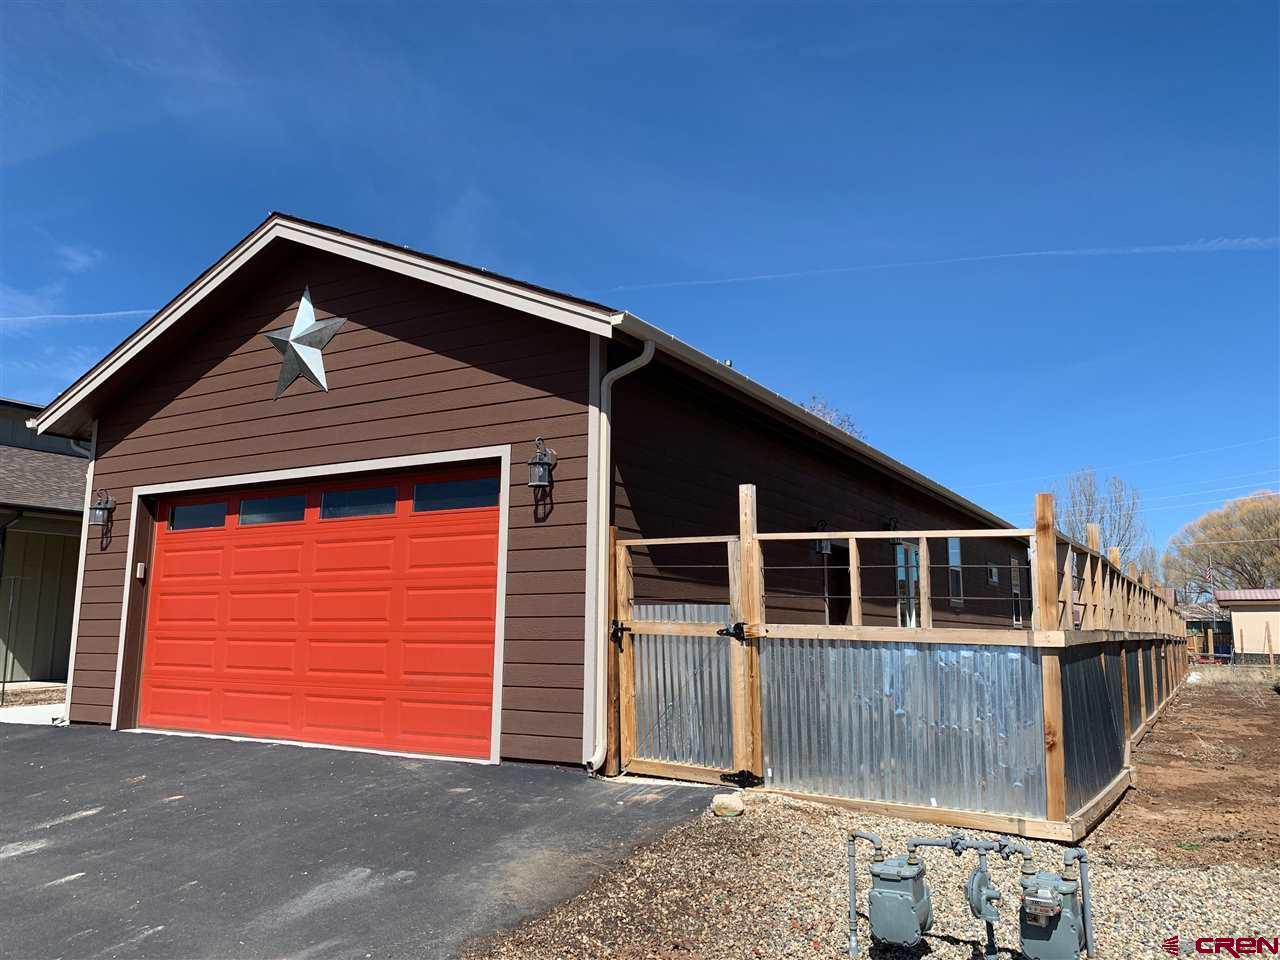 MLS# 767638 - 3 - 515 Tranquilo Court, Ignacio, CO 81137